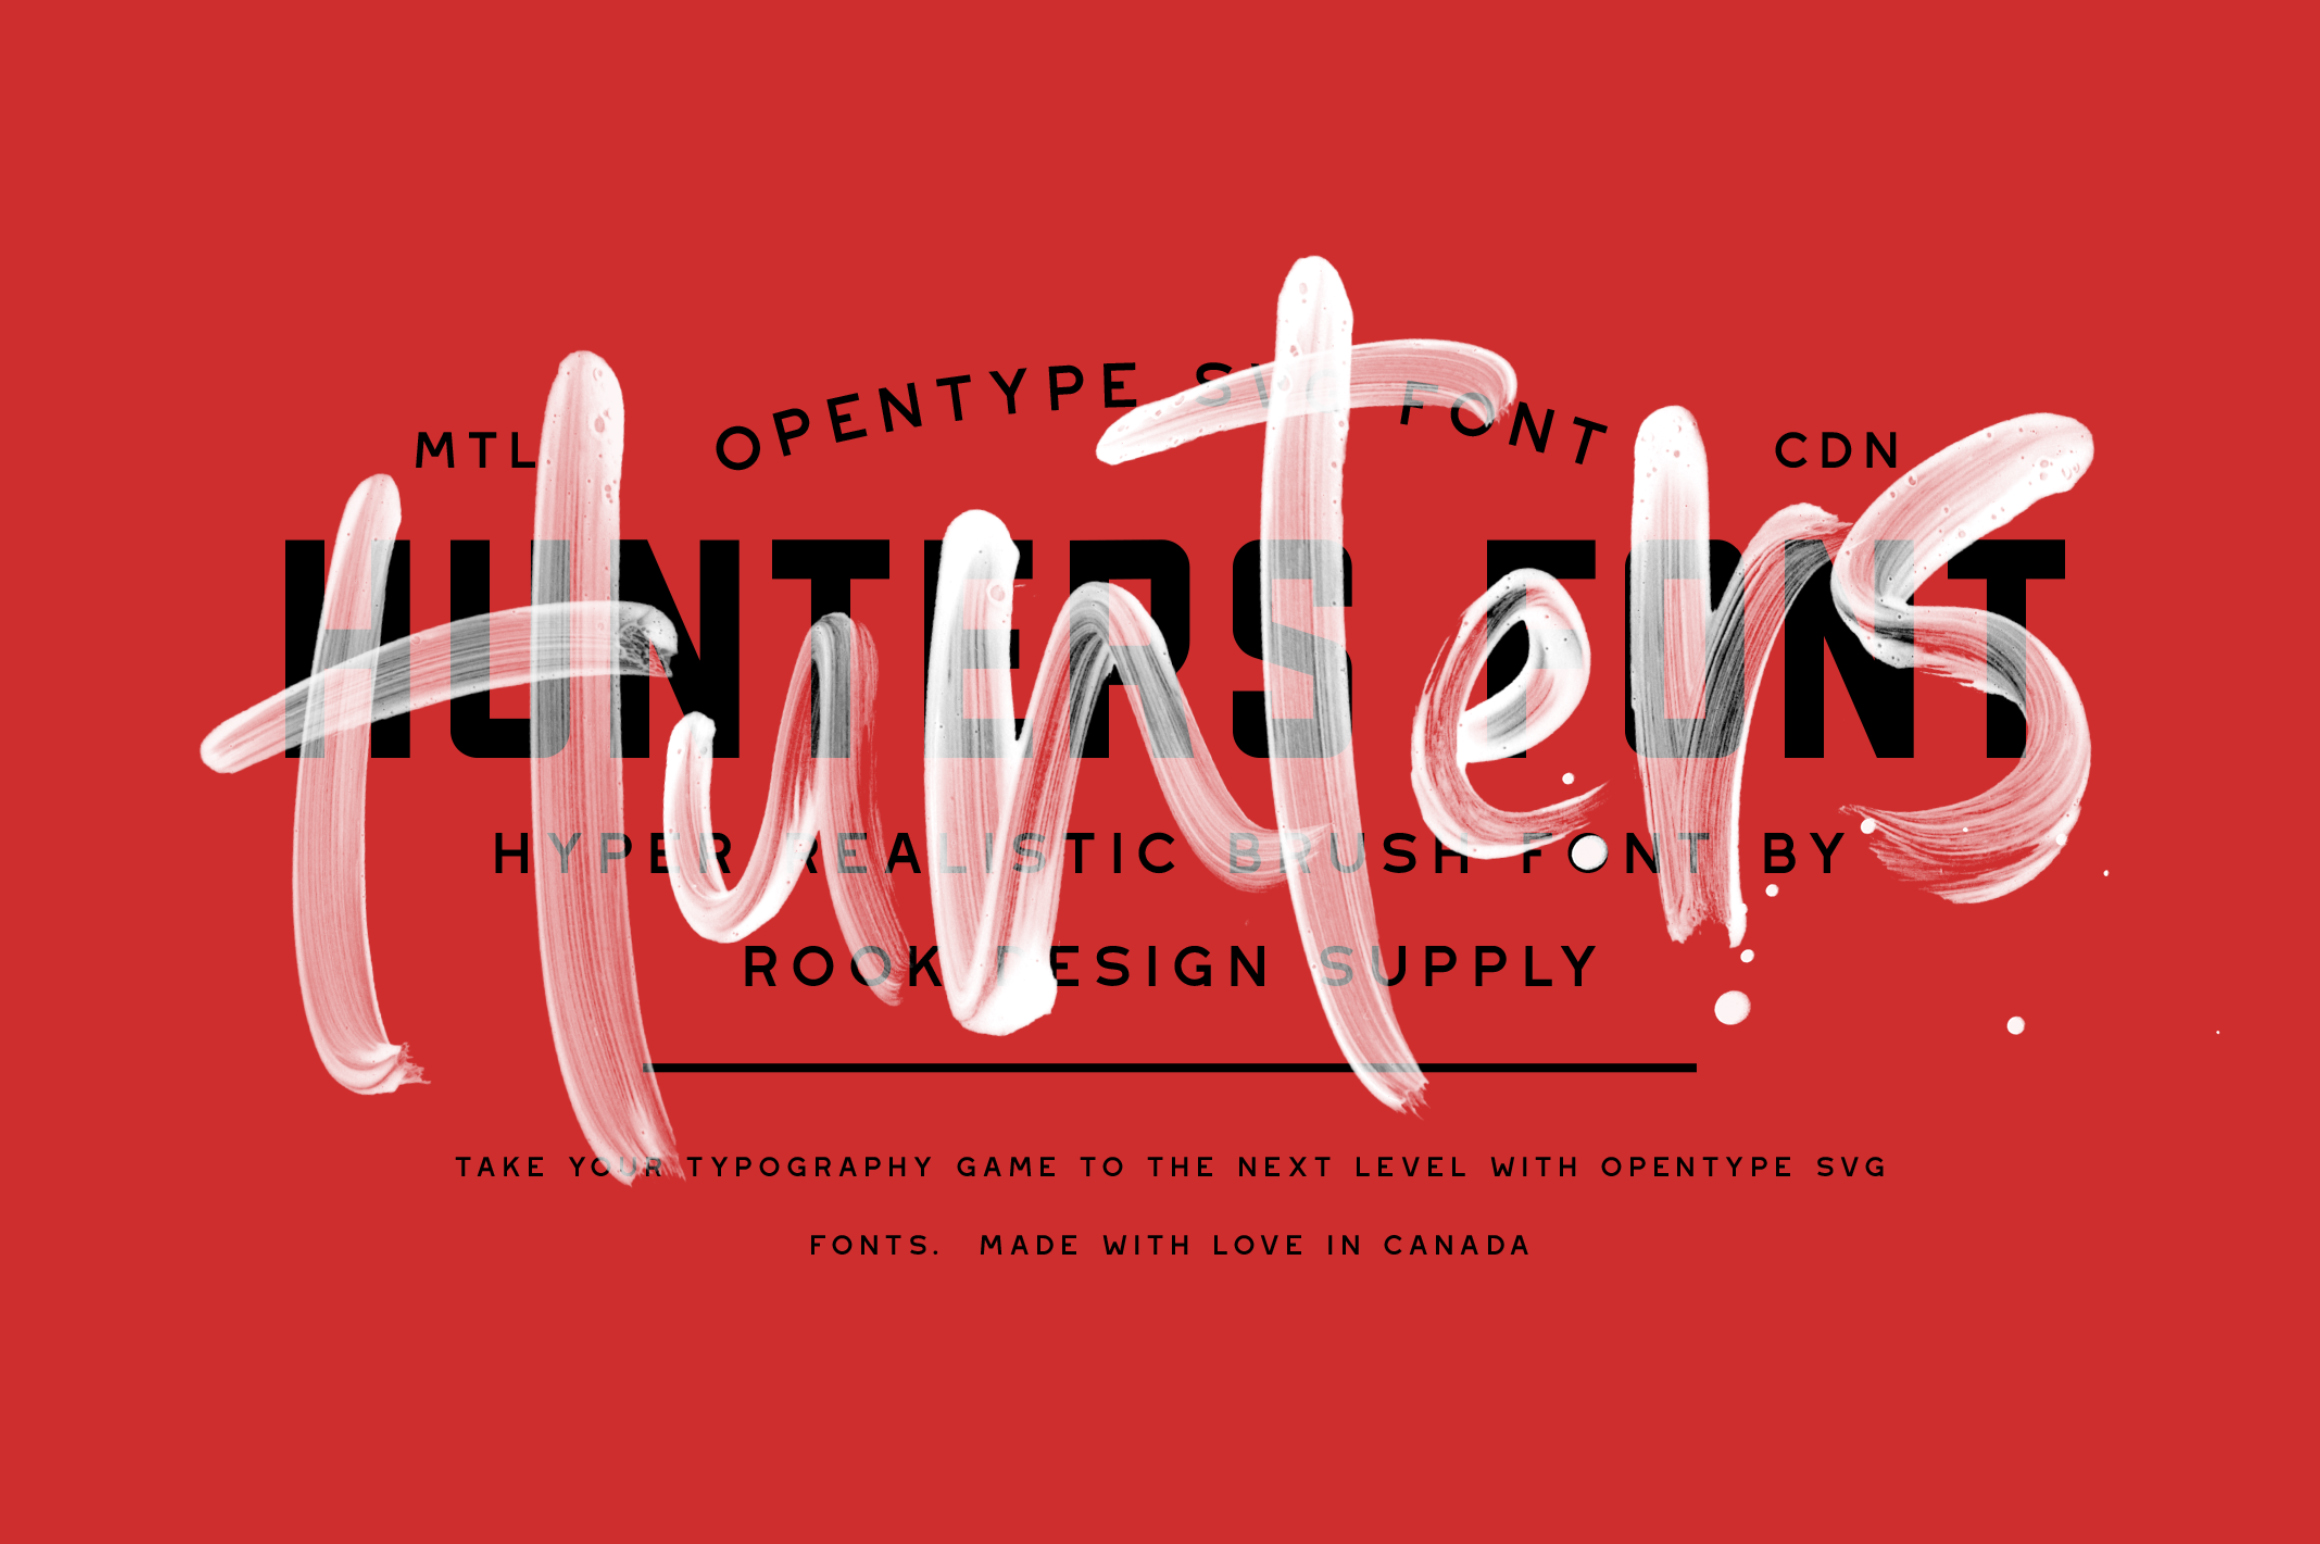 Hunters - Opentype SVG - Available on Creative Market